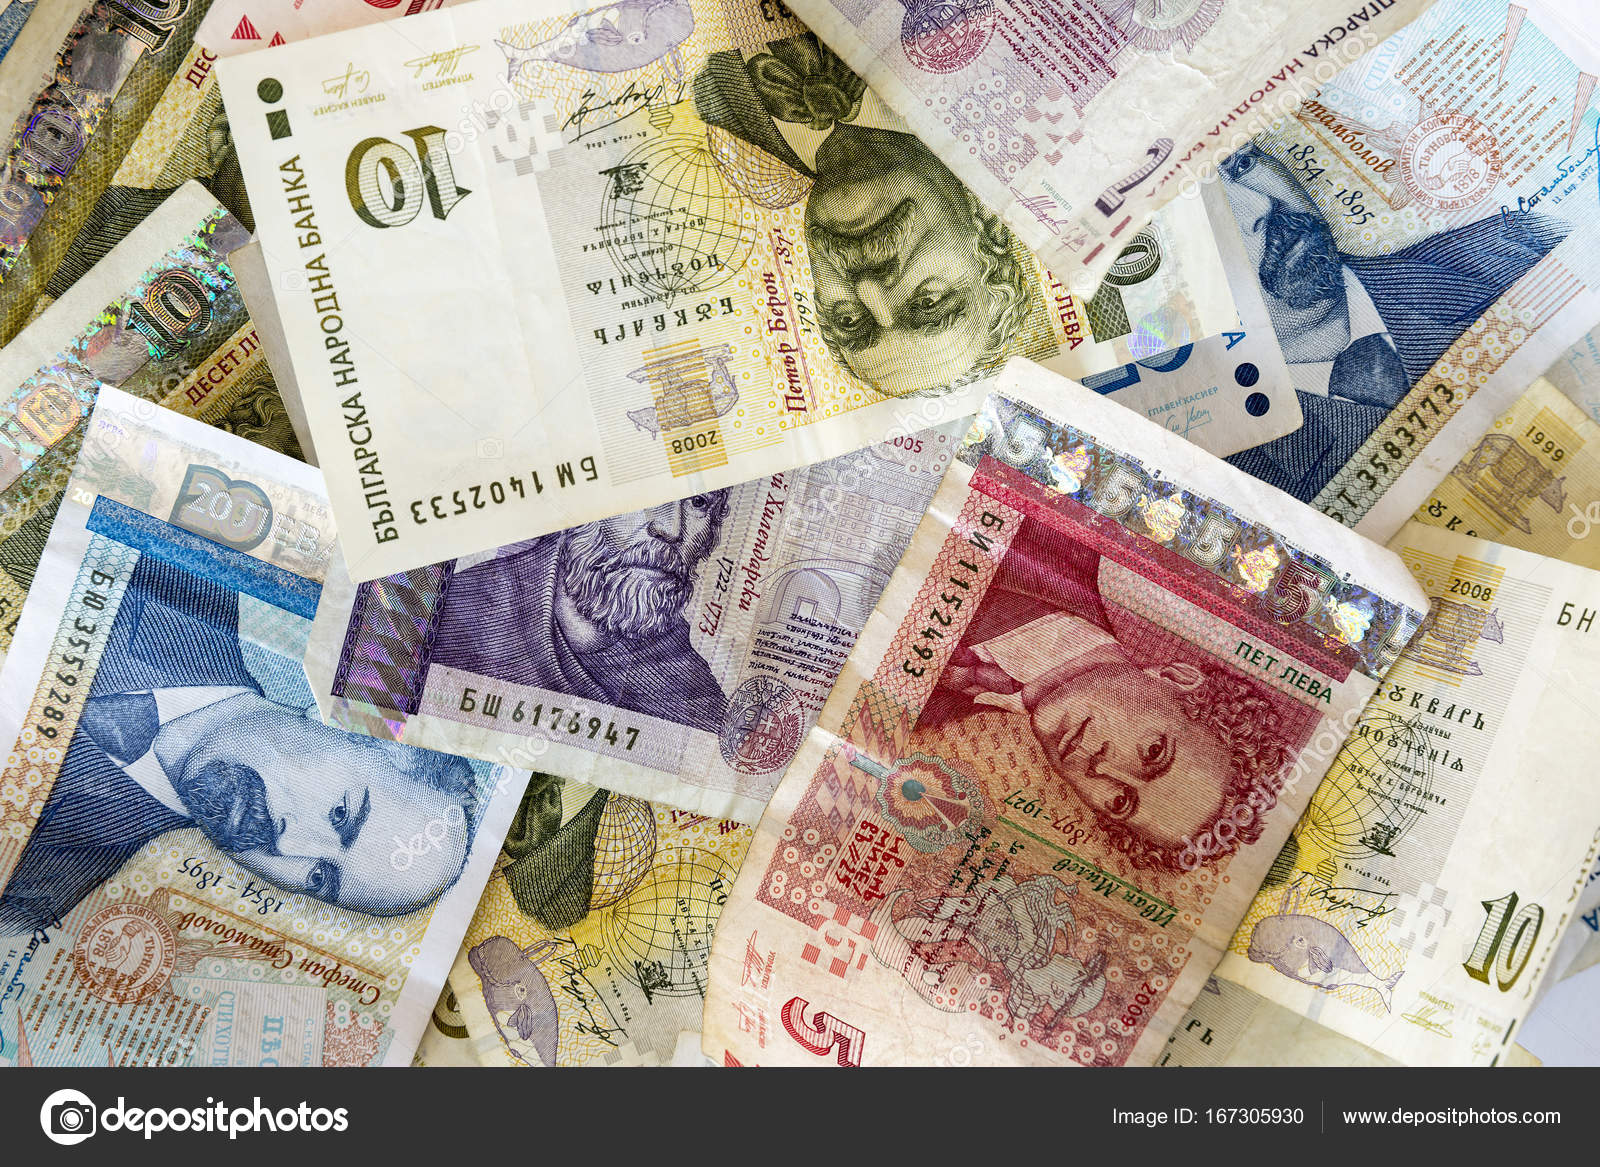 Bulgarian lev money banknotes stock photo belish 167305930 bulgarian lev money banknotes stacked and photographed from above photo by belish biocorpaavc